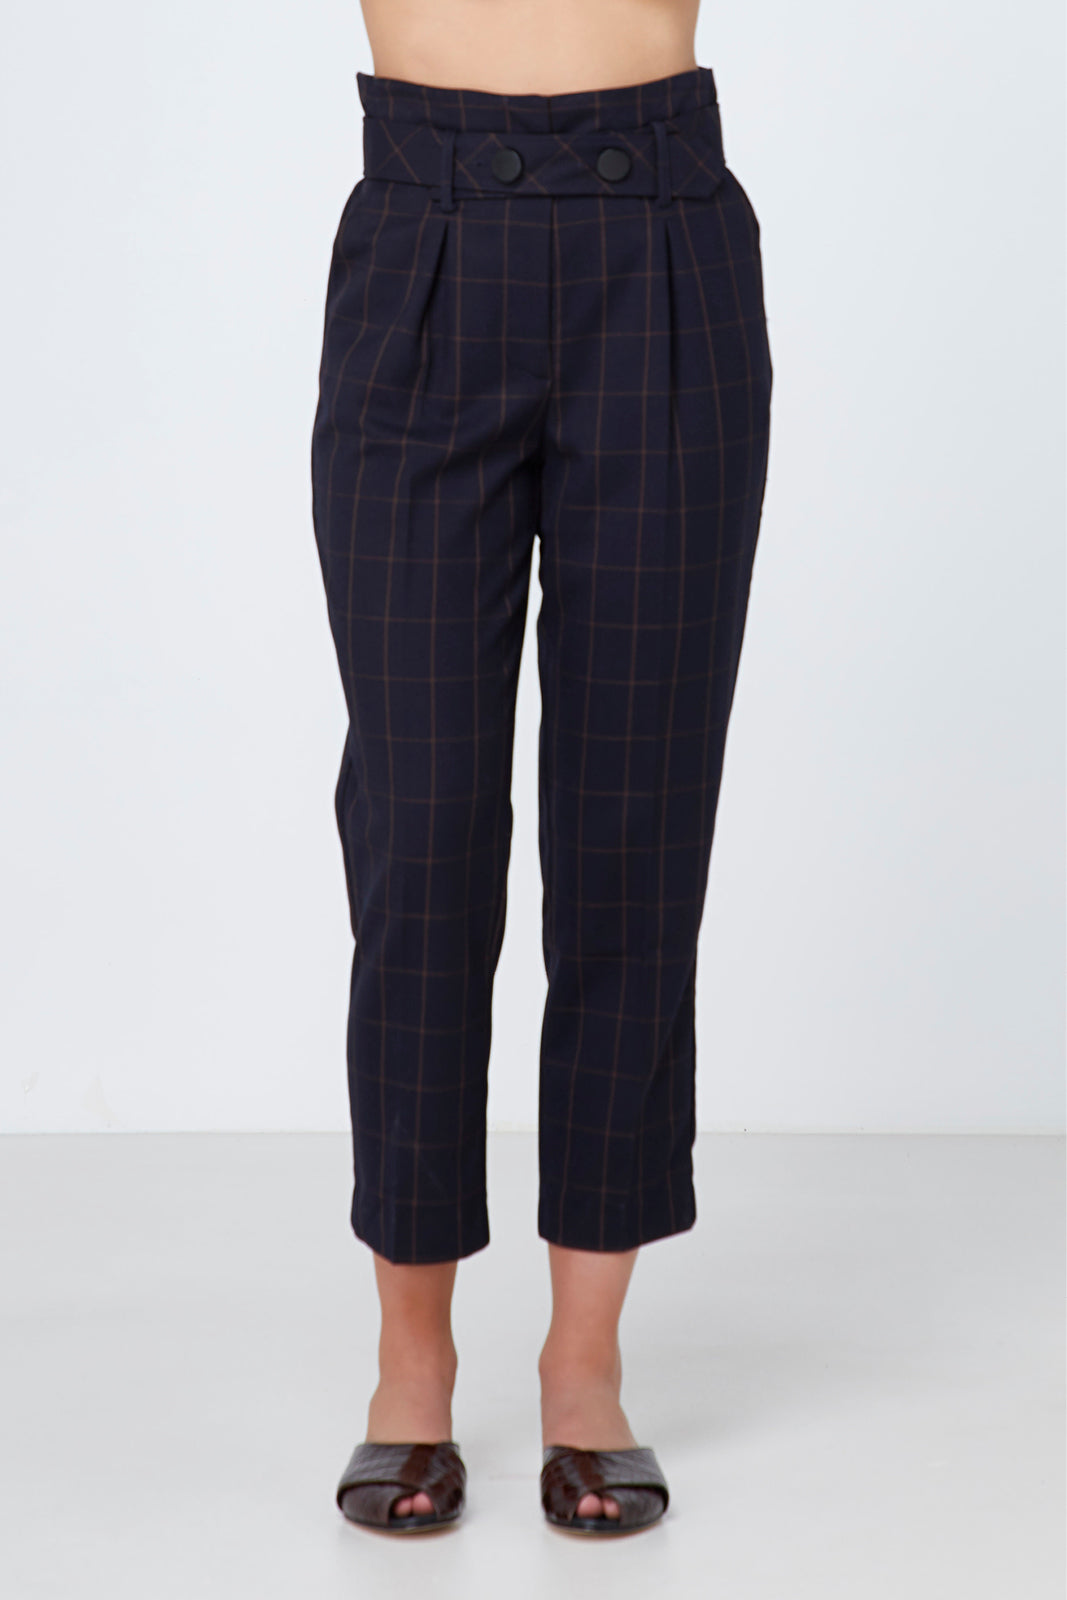 Elka Mae Pant in Tan Check